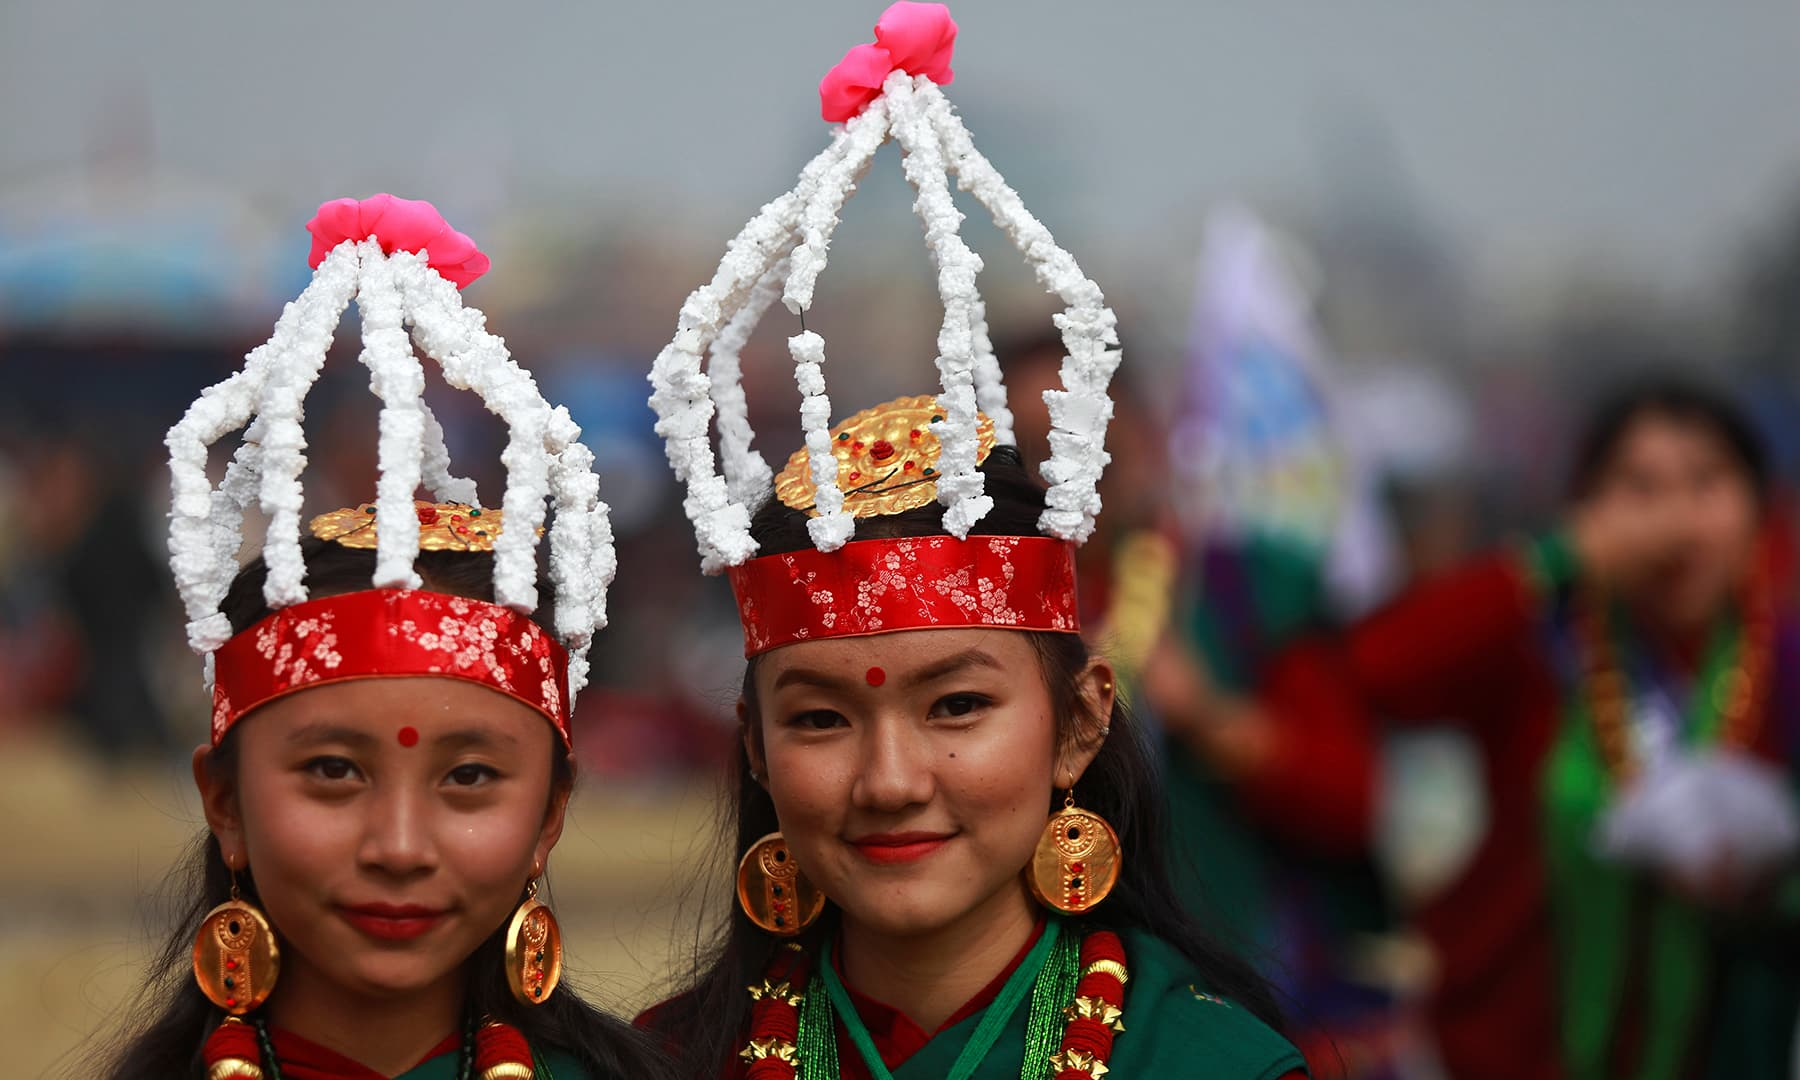 Gurung girls wearing a traditional costume pose as they take part in Tamu Lhosar parade, marking the beginning of the Gurung community's new year, in Kathmandu, Nepal, on Tuesday. — Reuters